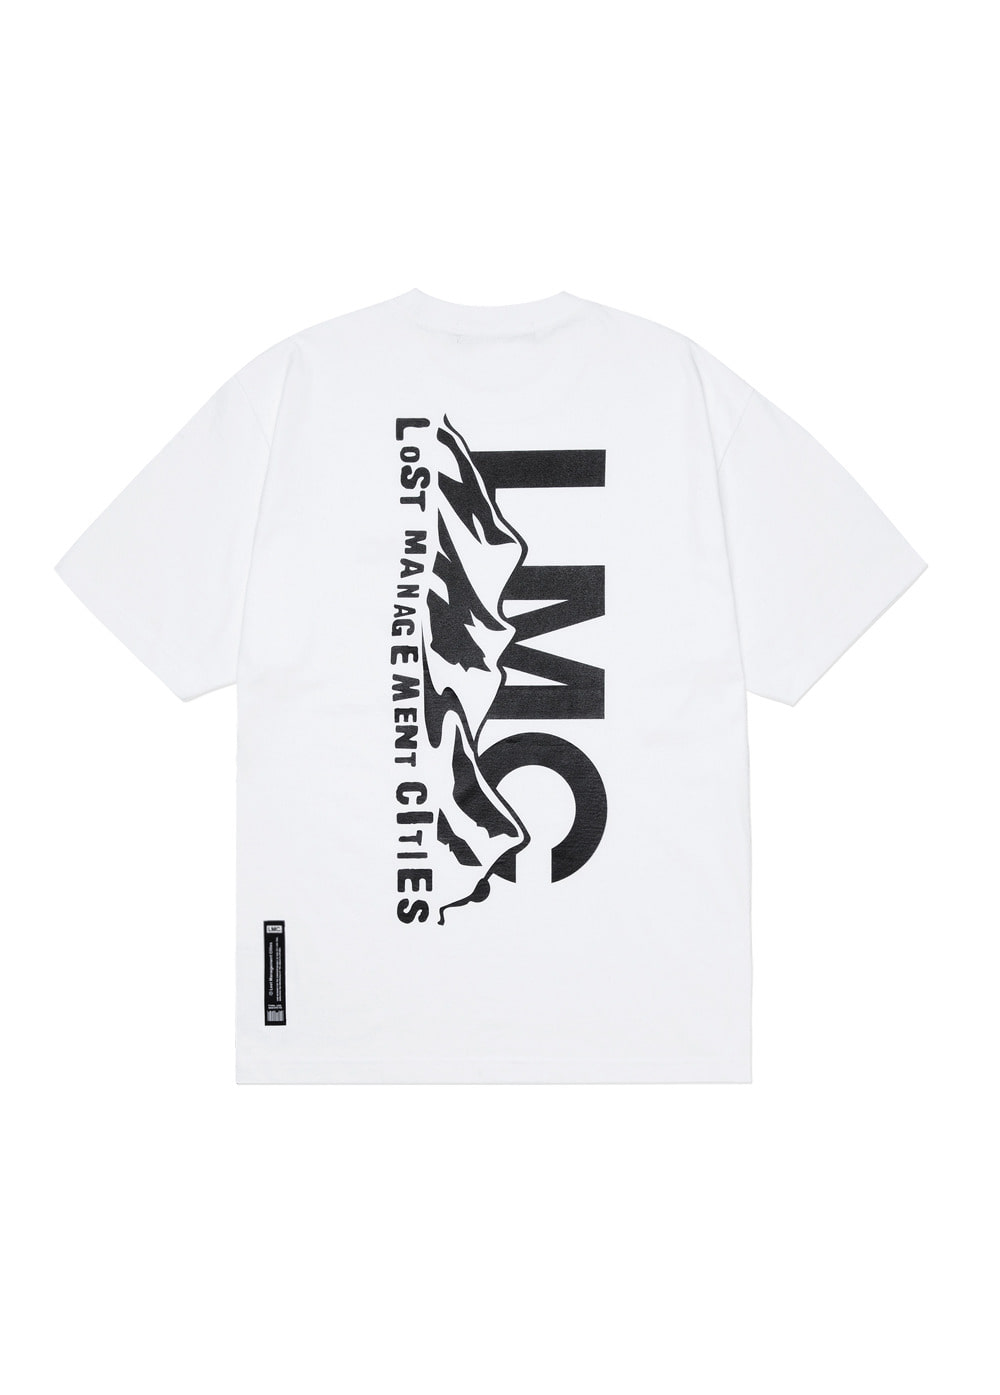 LMC MOUNTAIN TEE white